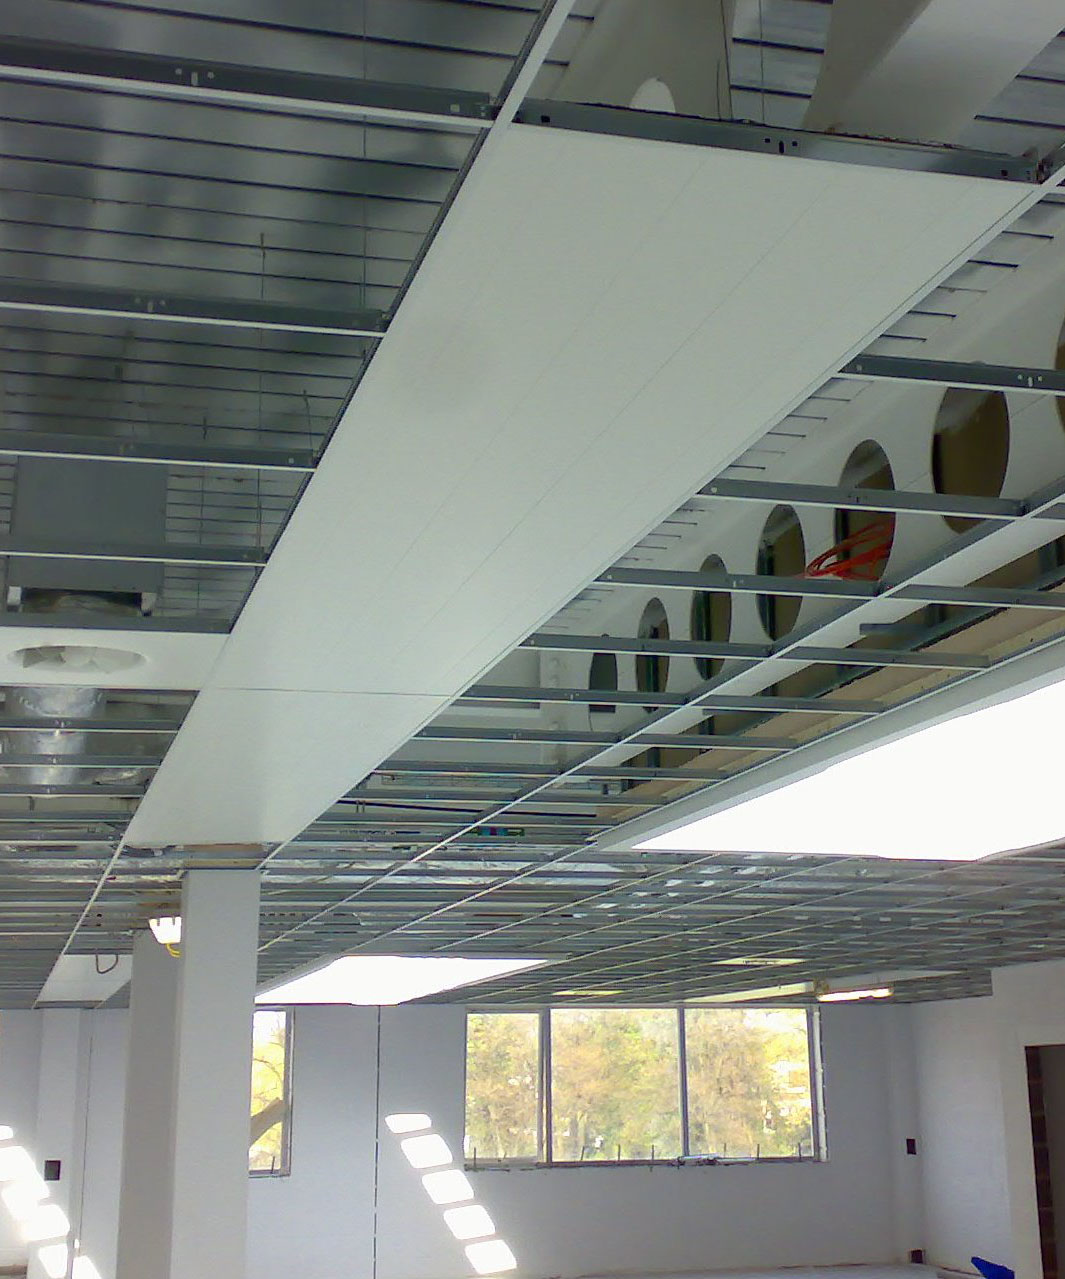 radiant panels plus ceiling latest page spc of ceilings thermatile img news